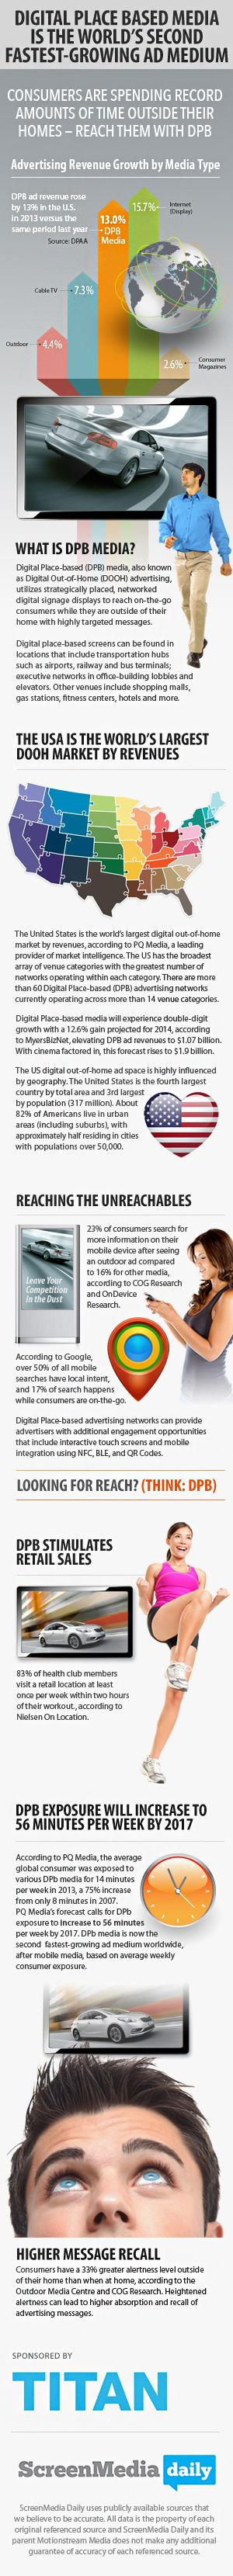 USA Digital Out-of-Home (DOOH) Advertising Networks - ScreenMedia Daily